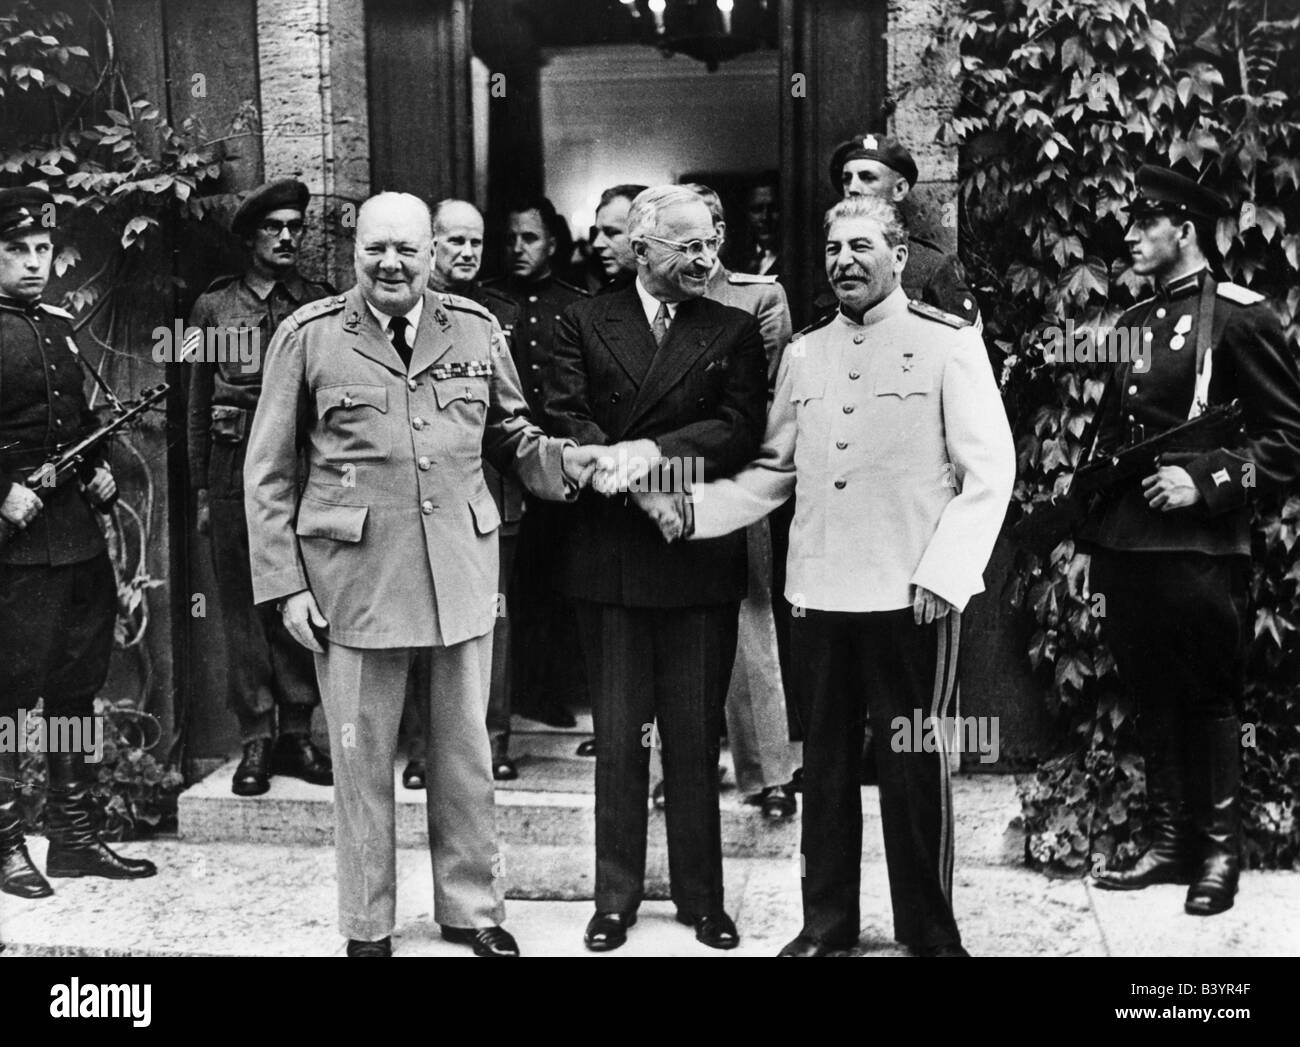 events, Second World War / WWII, conferences, Potsdam Conference 17.7.1945 - 2.8.1945, Winston Churchill, Harry - Stock Image